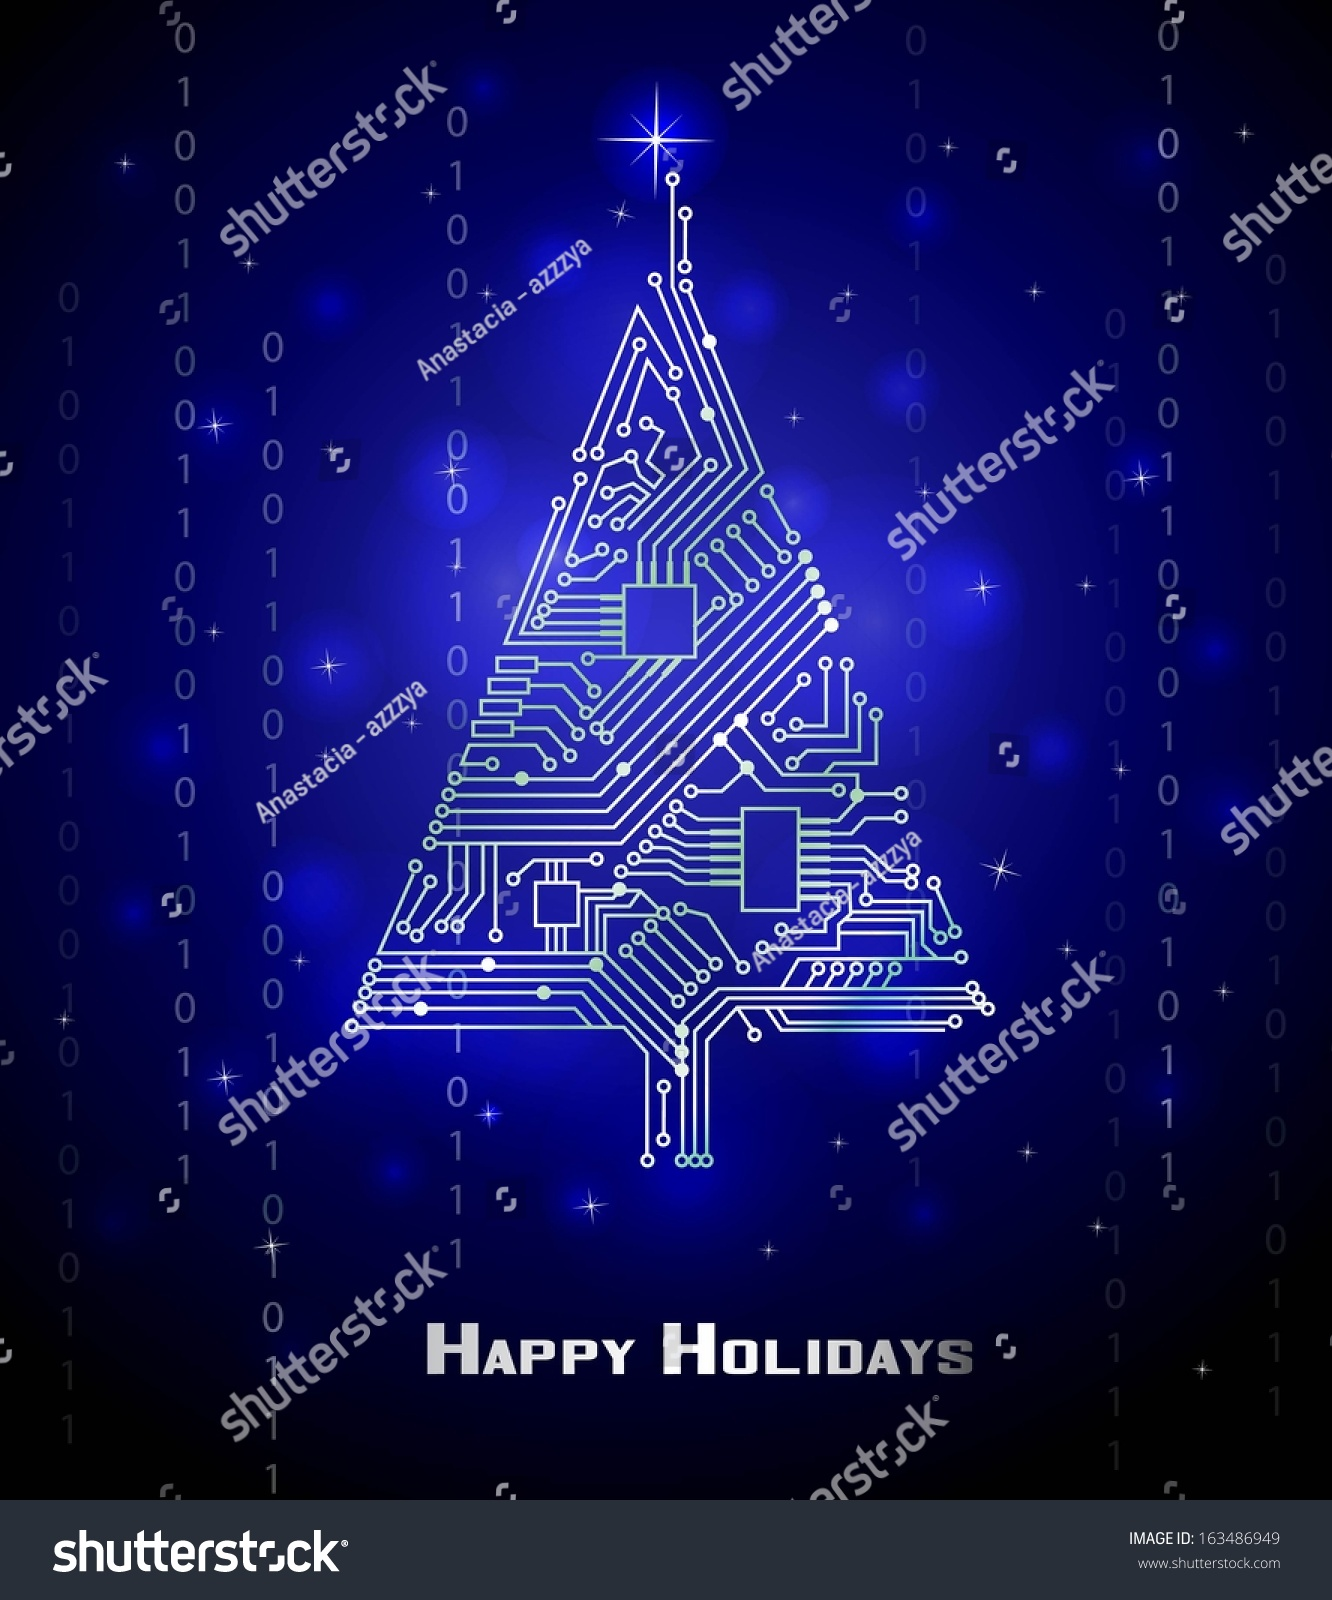 Hitech Christmas Tree Digital Electronic Circuit Stock Vector Diagram Also Schematic Diagrams On Hi Tech From A